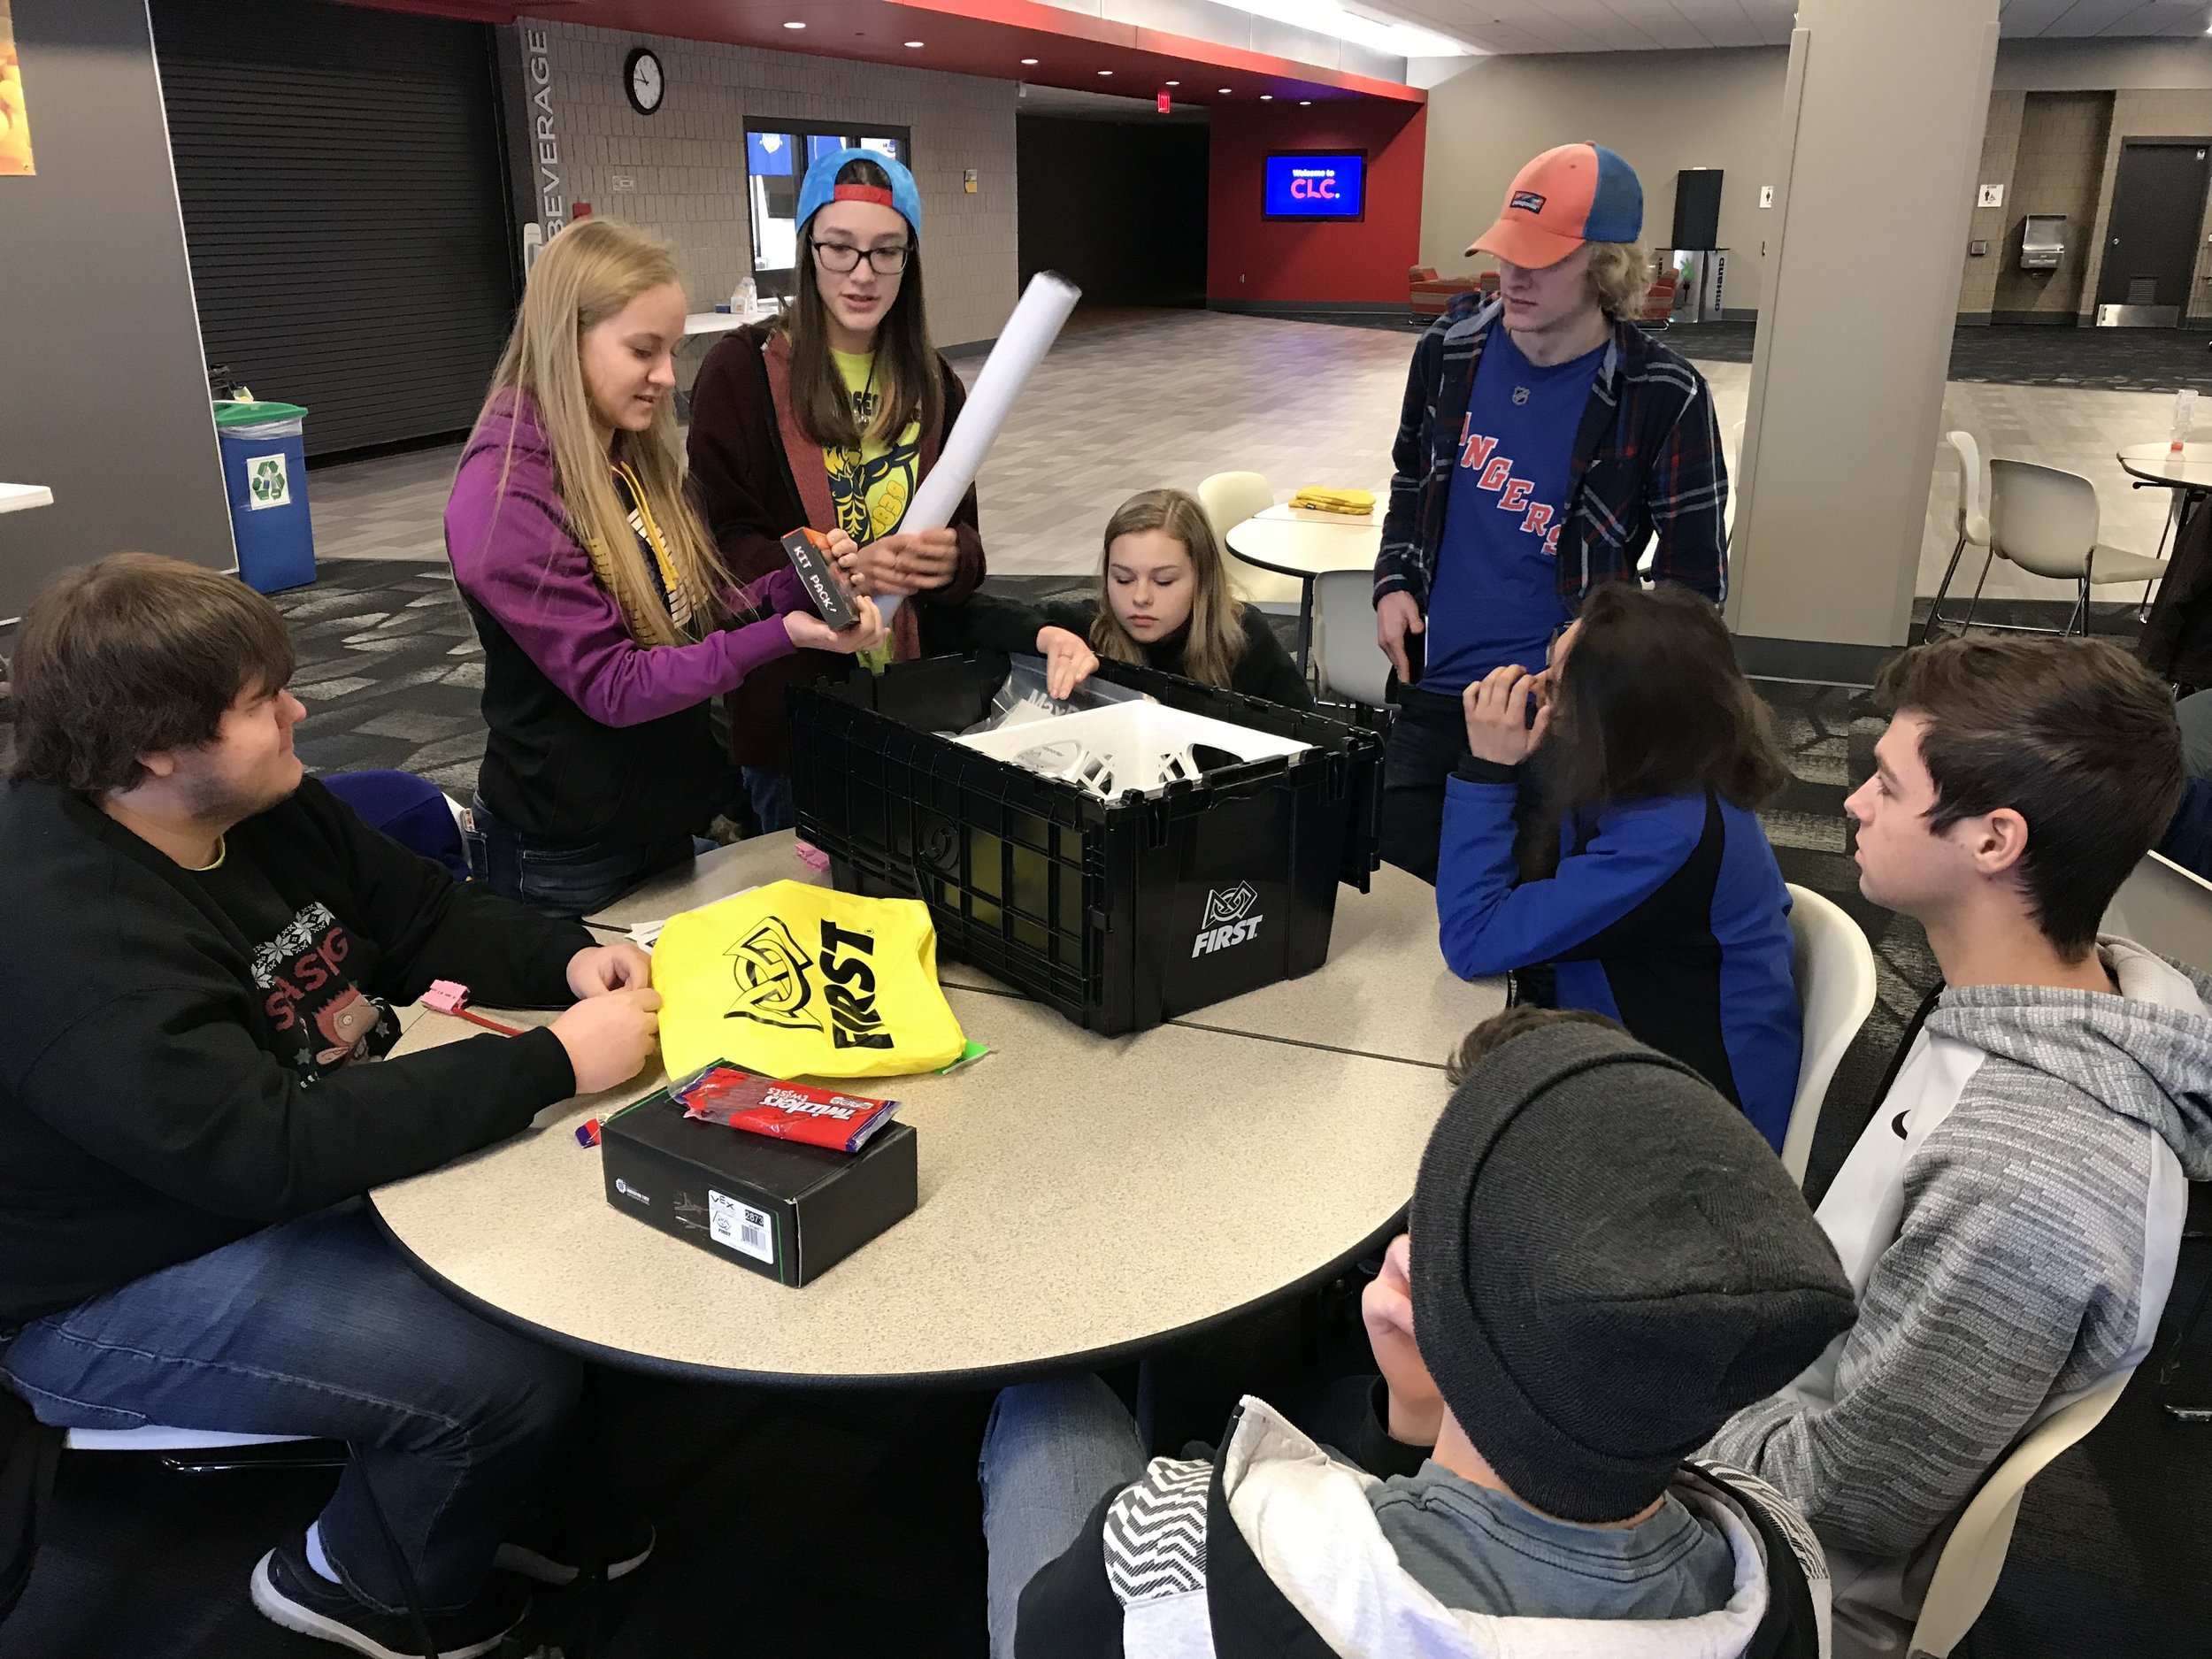 WDC robotics team opening their kit of parts at the 2018 kickoff on Jan. 6 at Central Lakes College in Staples. Photo by Shane Snyder, WDC Schools.